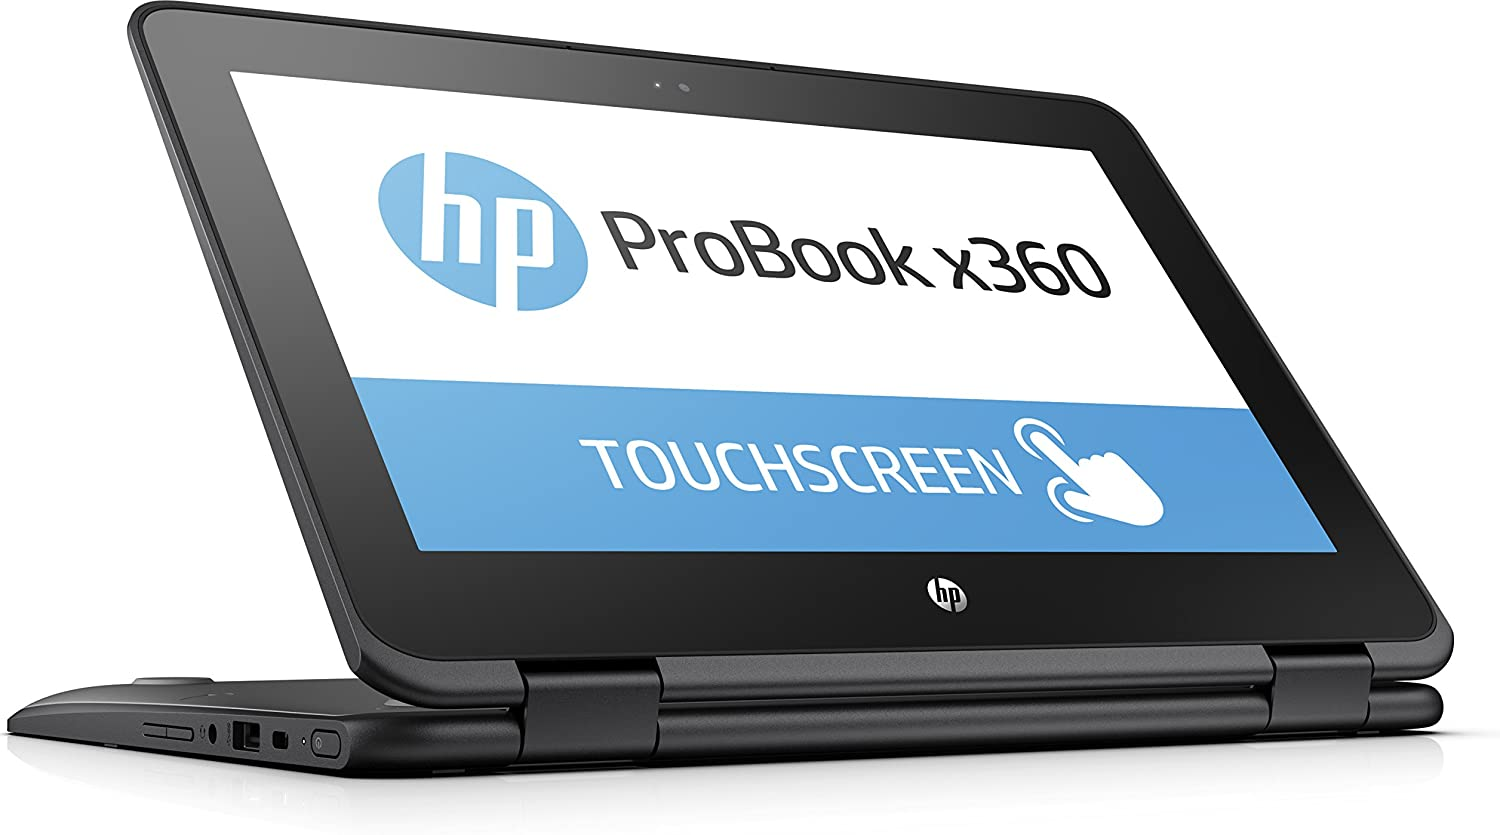 HP ProBook x360 11-G1 EE 11.6-inch 2-in-1 Convertible HD Touch-screen Laptop PC with Active Pen, Intel N3450 Quad-Core, 64GB eMMC, 4GB DDR3, 802.11ac, Bluetooth, Win10S